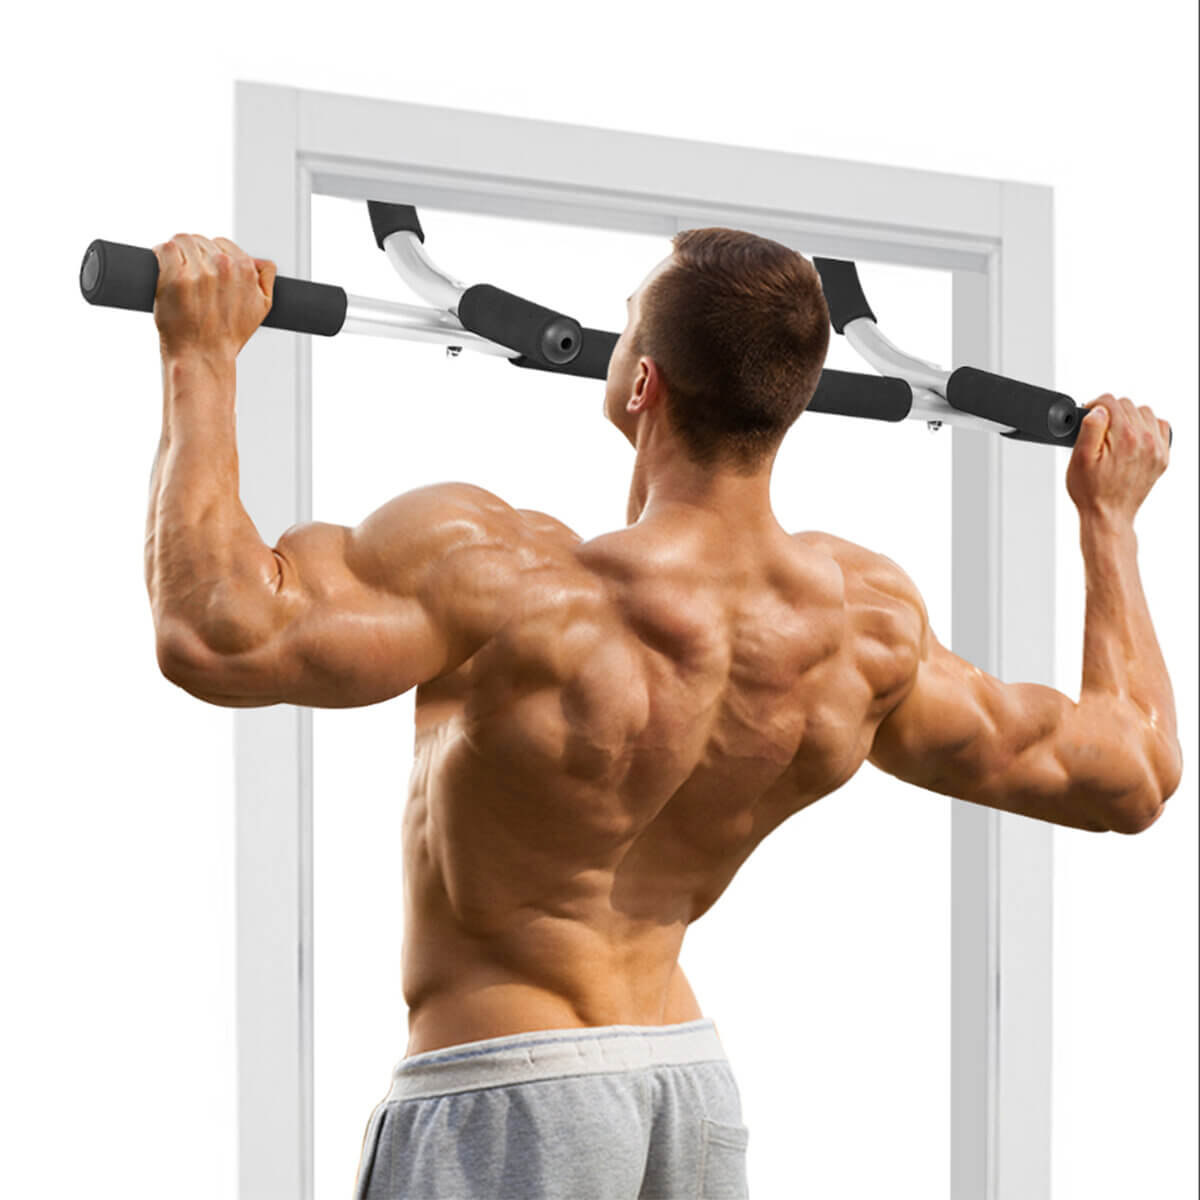 Fitnez™ Pull Up Bar for Home Workout and Fitness Equipment